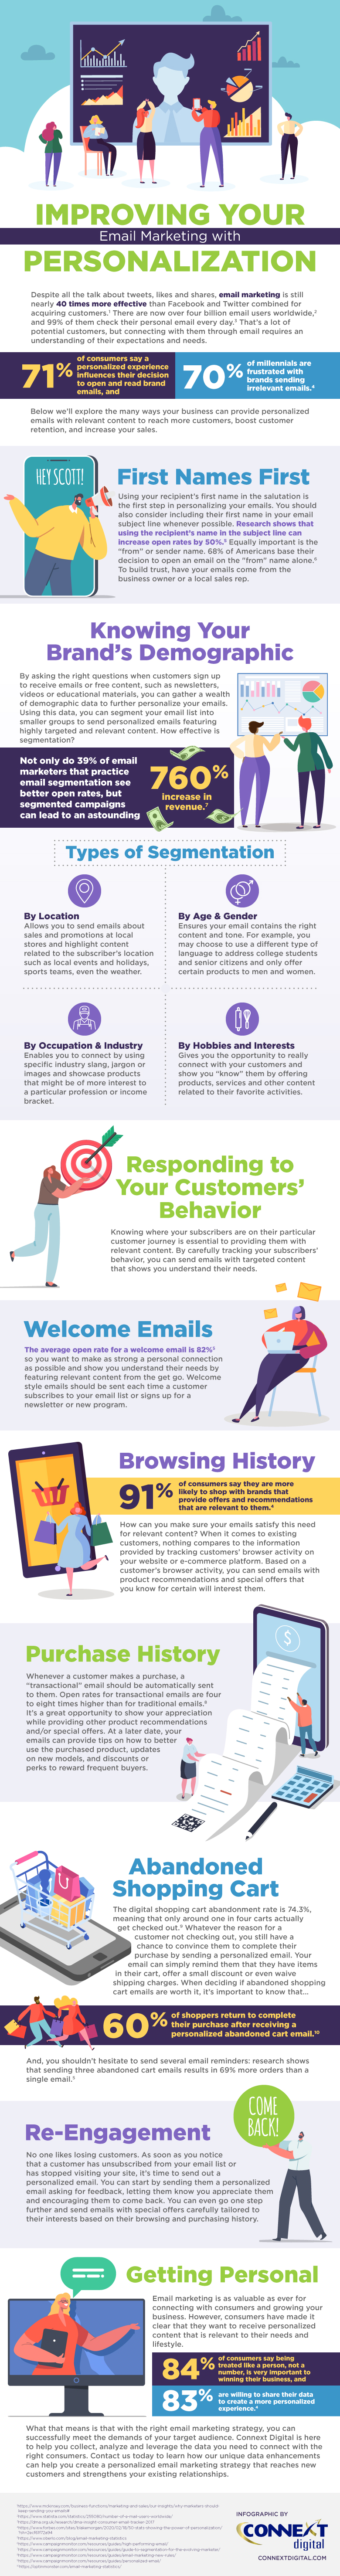 Improving Your Email Marketing with Personalization